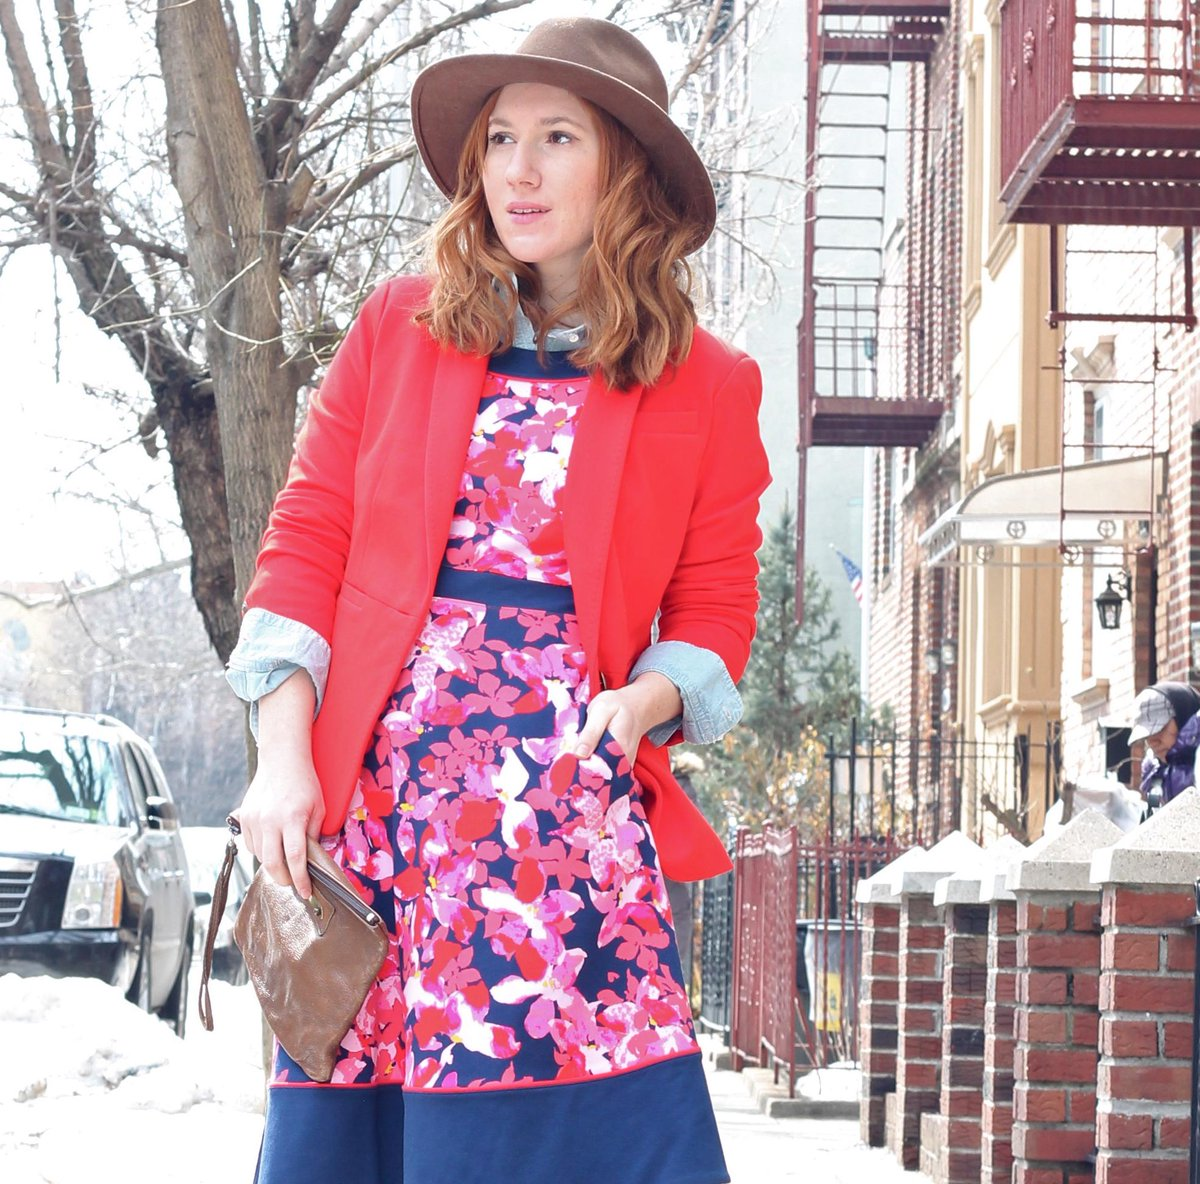 Teaming up with @stylishhwife @VeraSweeney & @AudreyMcClellan for some spring style inspo - http://t.co/KUtH03Wx61 http://t.co/w6wnJtRFjA